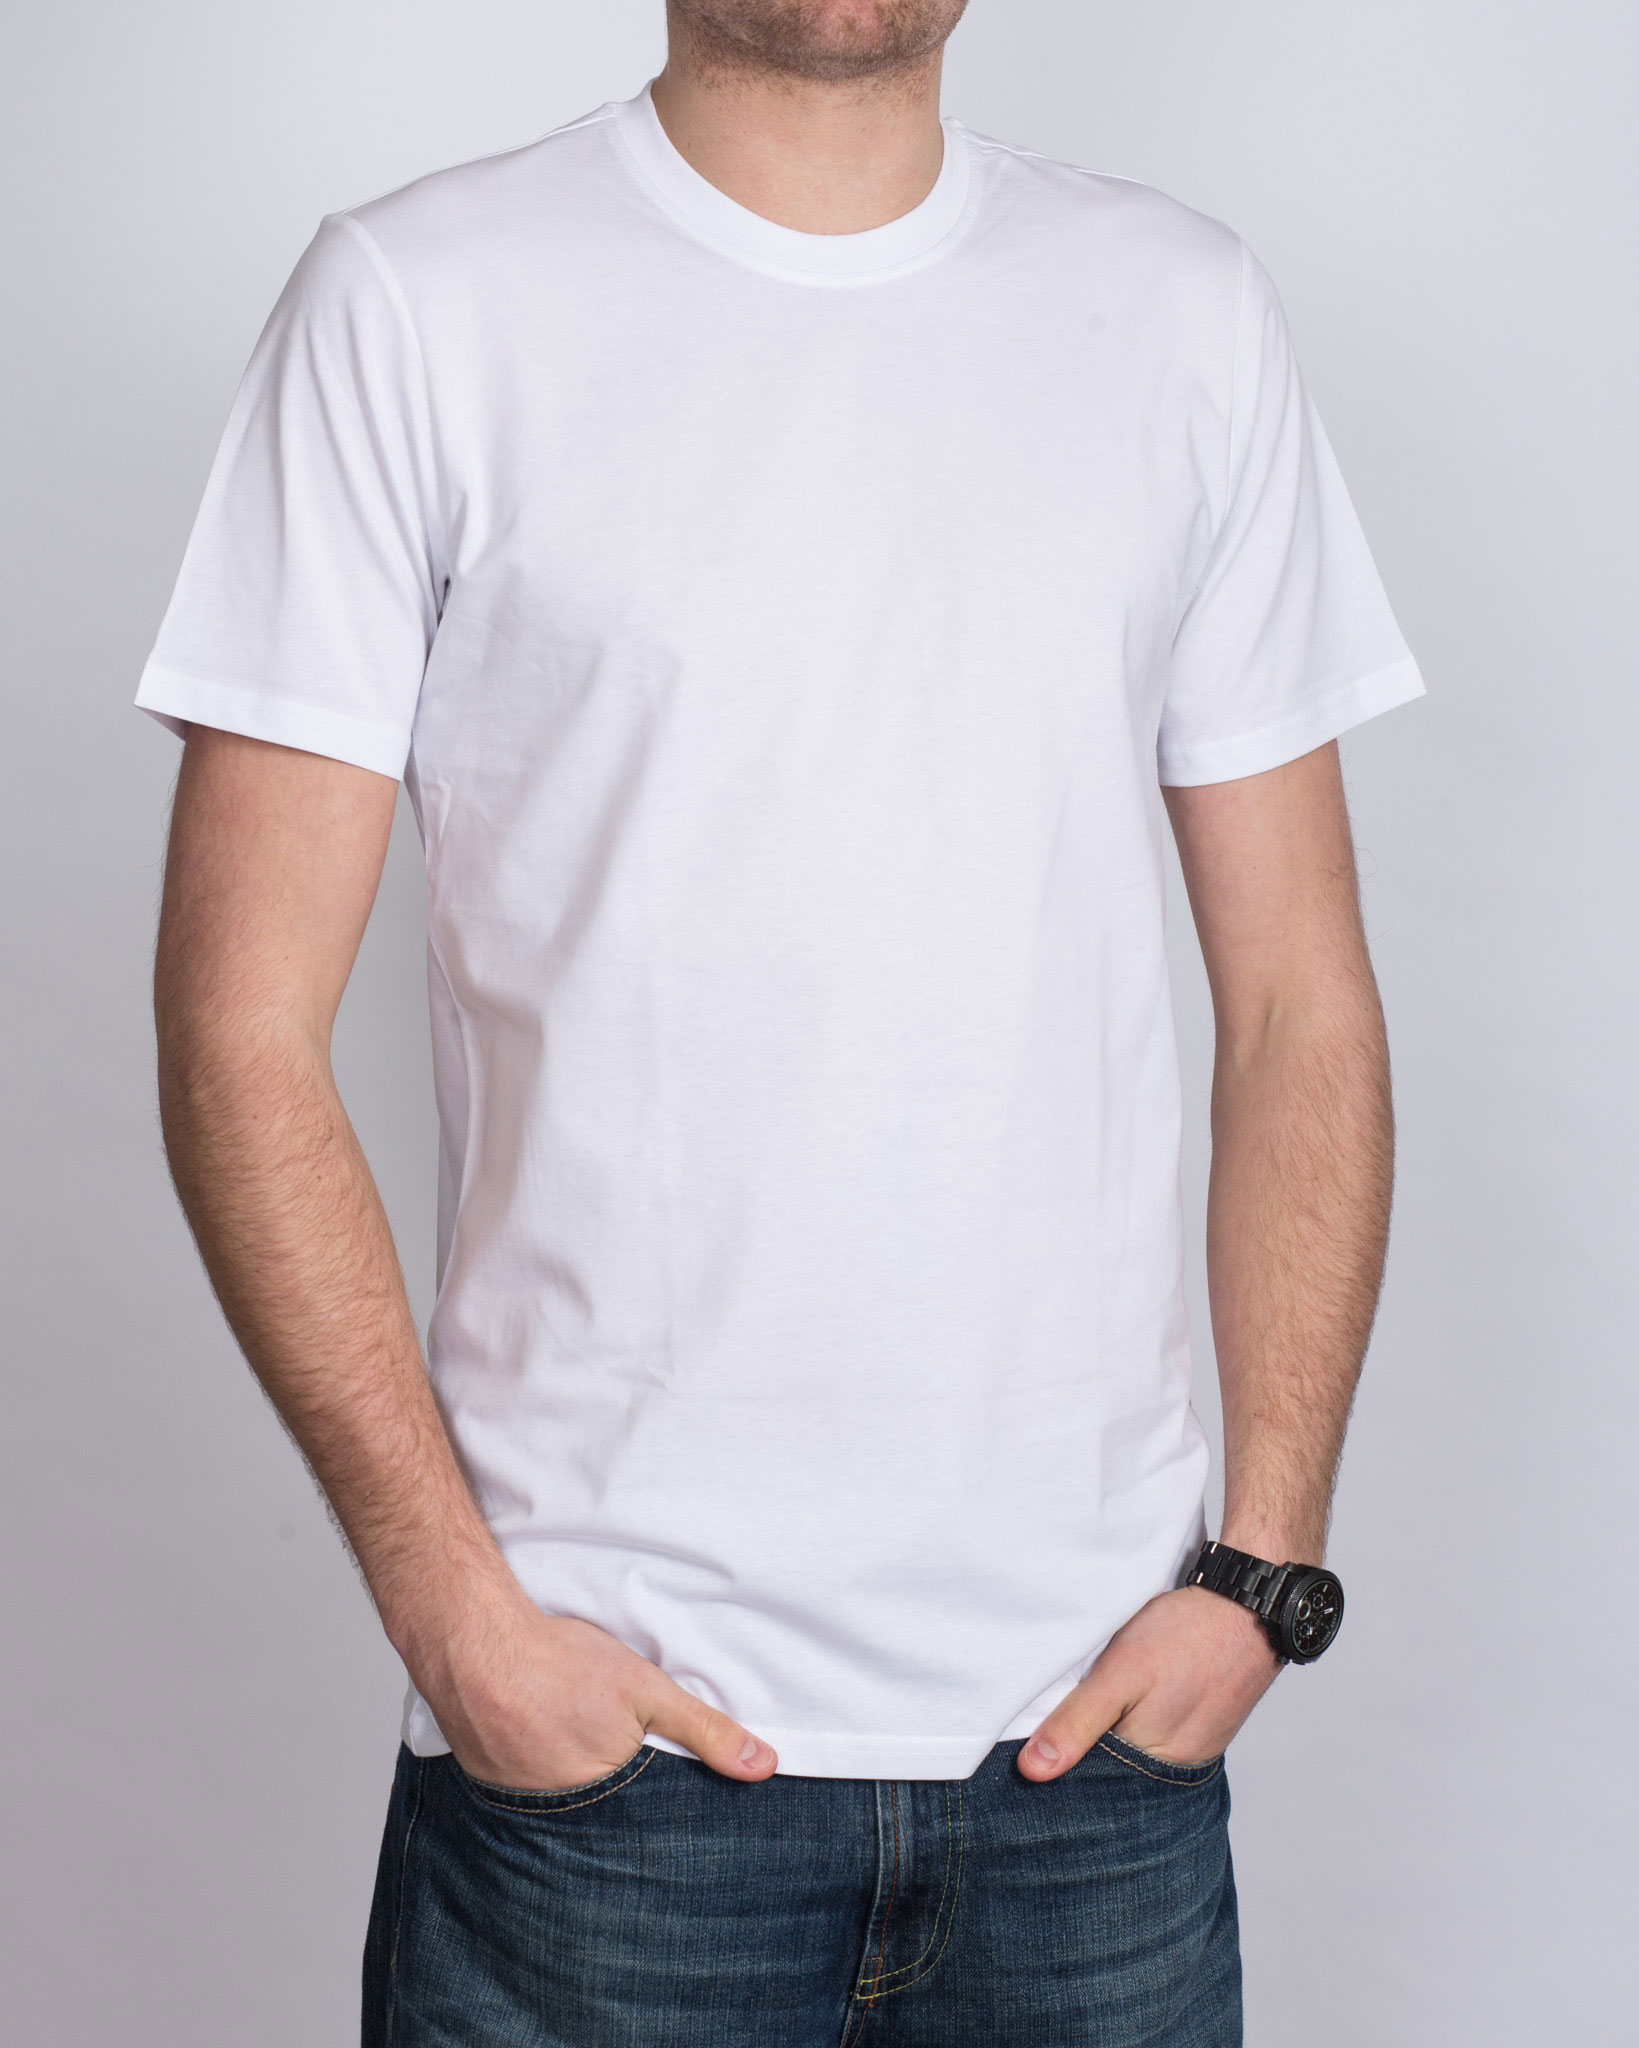 2T Extra Tall T-Shirt (white)